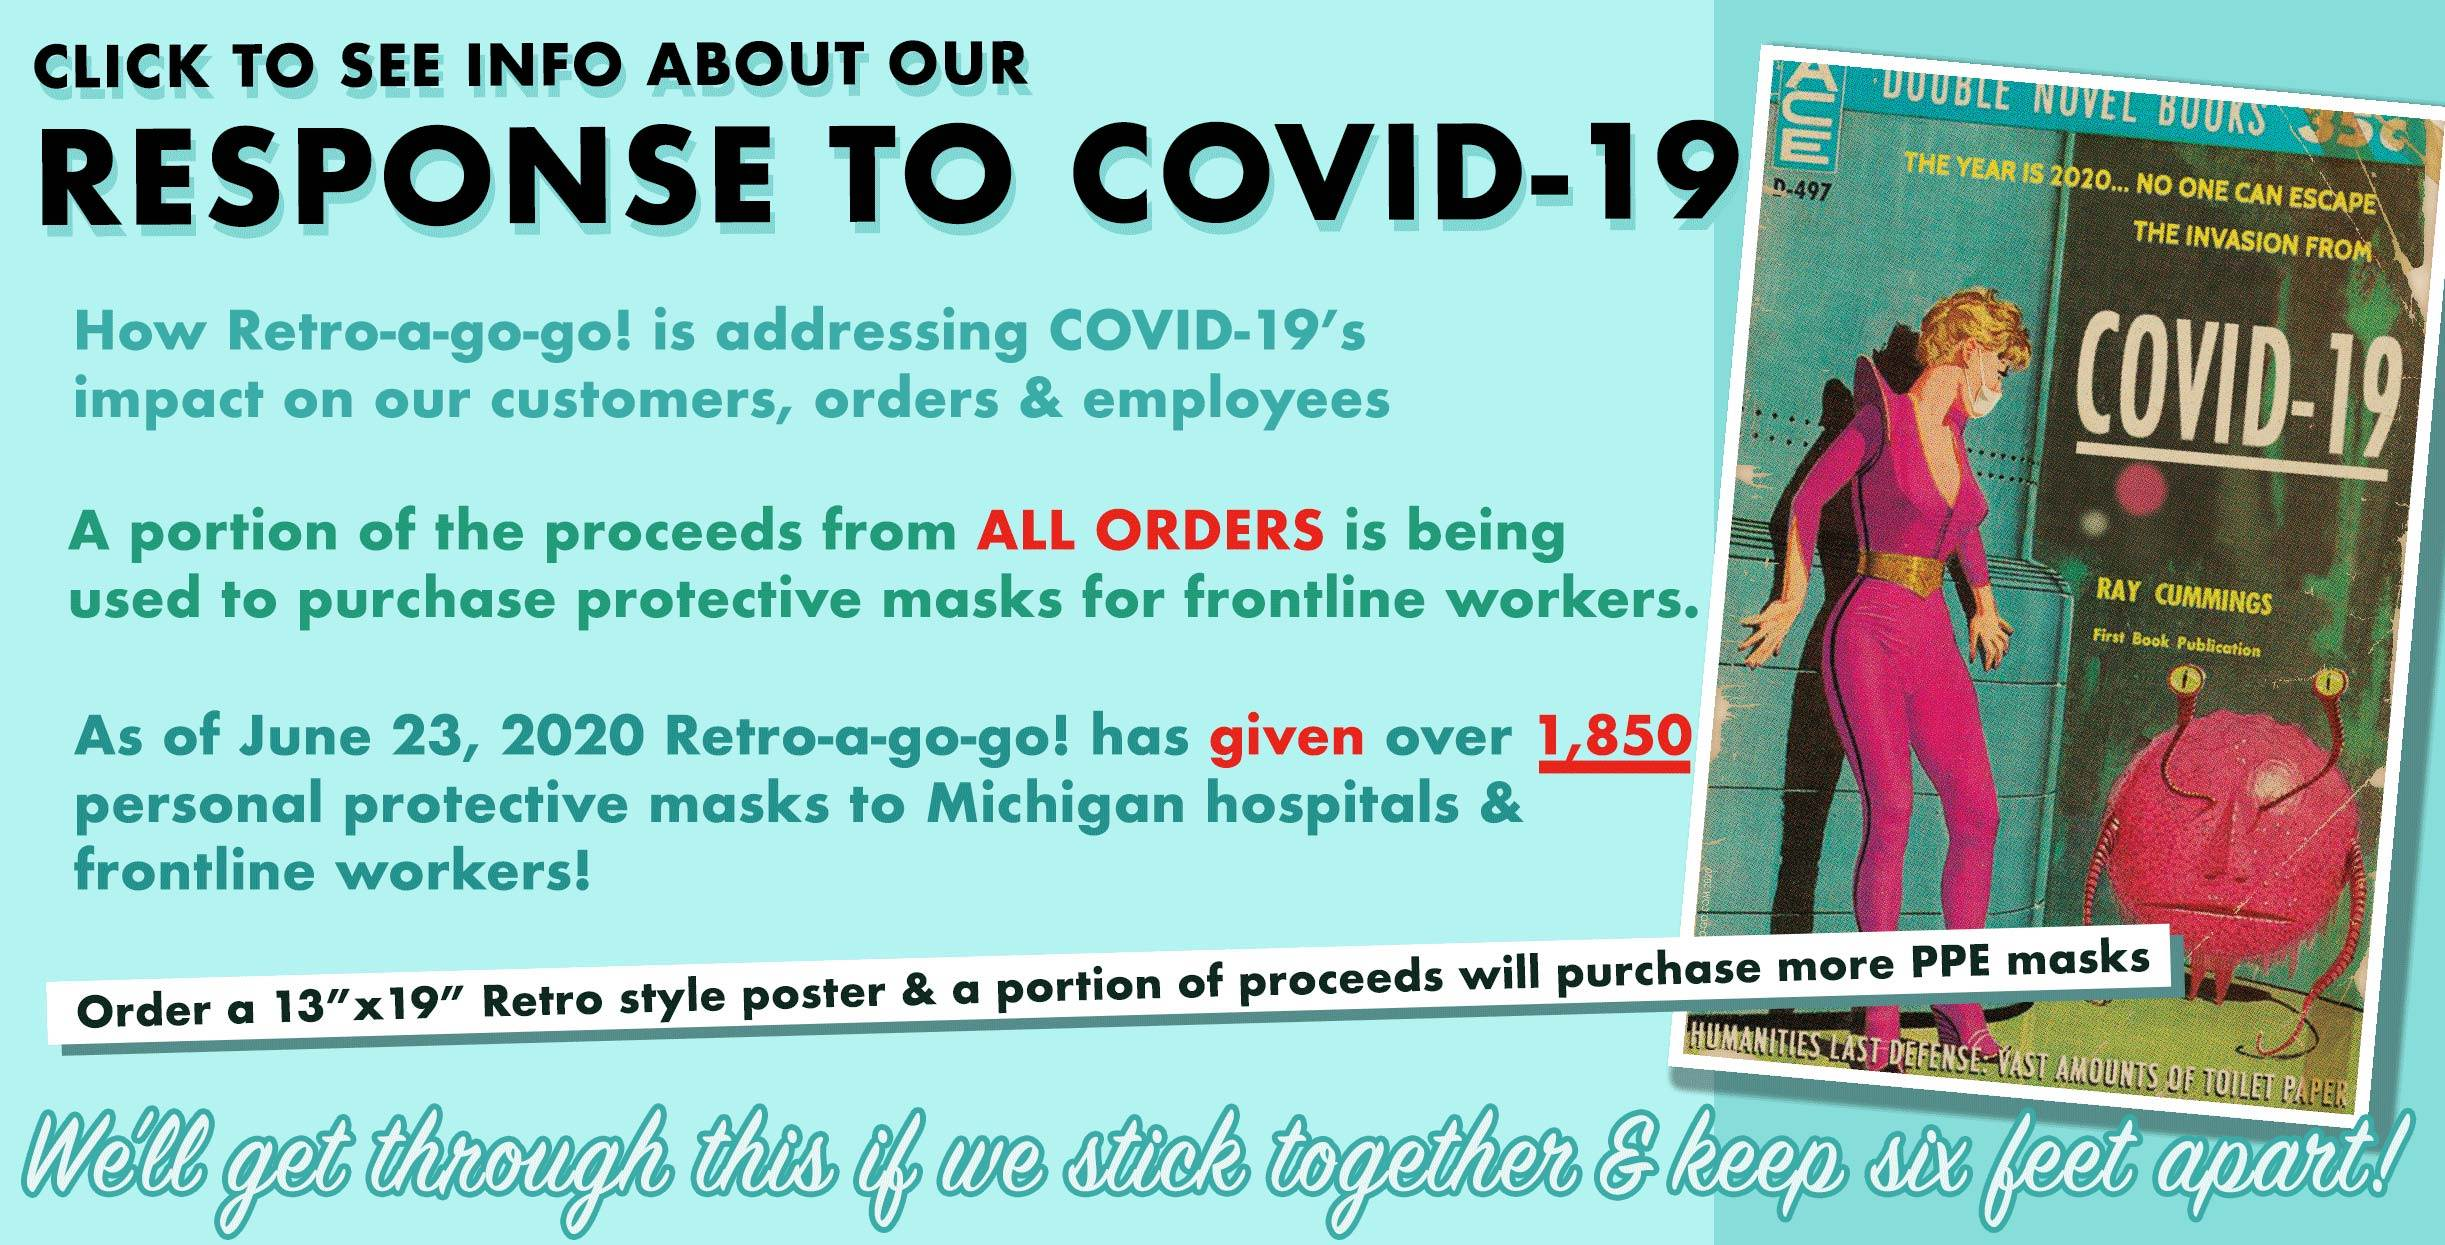 As of June 23, 2020 Retro-a-go-go! has donated over 1,850 personal protective masks to Michigan hospitals & frontline workers!